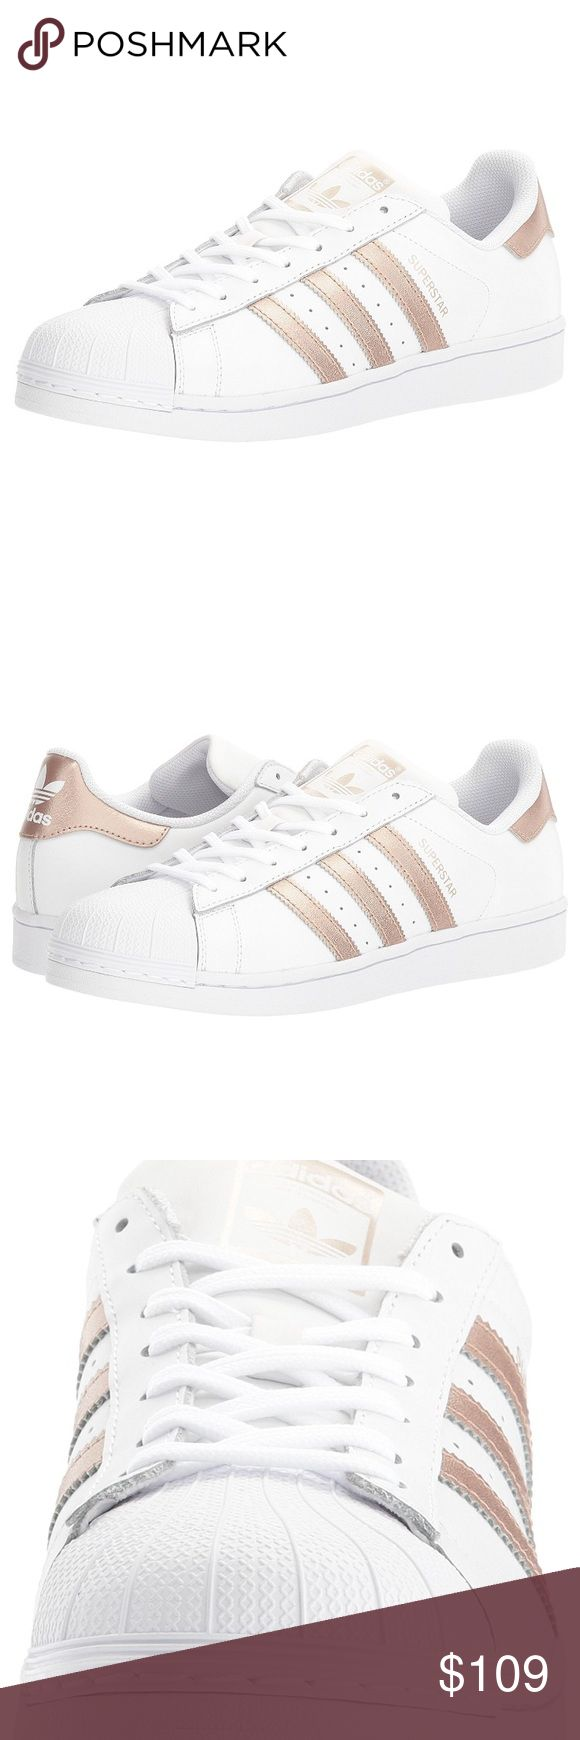 Adidas Superstar WHITE/ROSE GOLD Size 7.5